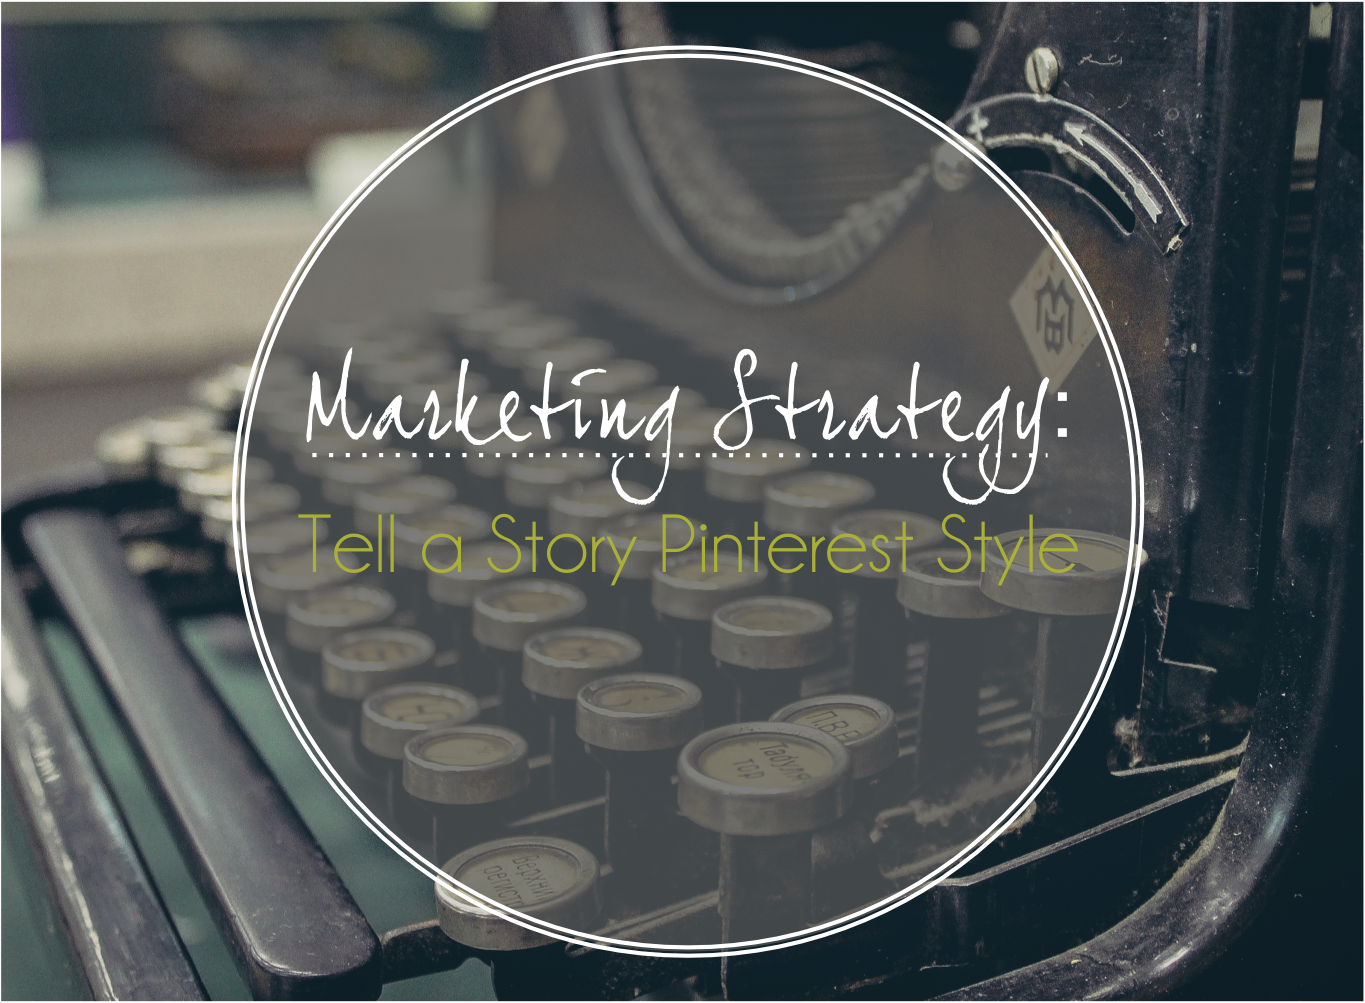 Pinterest Marketing Strategy